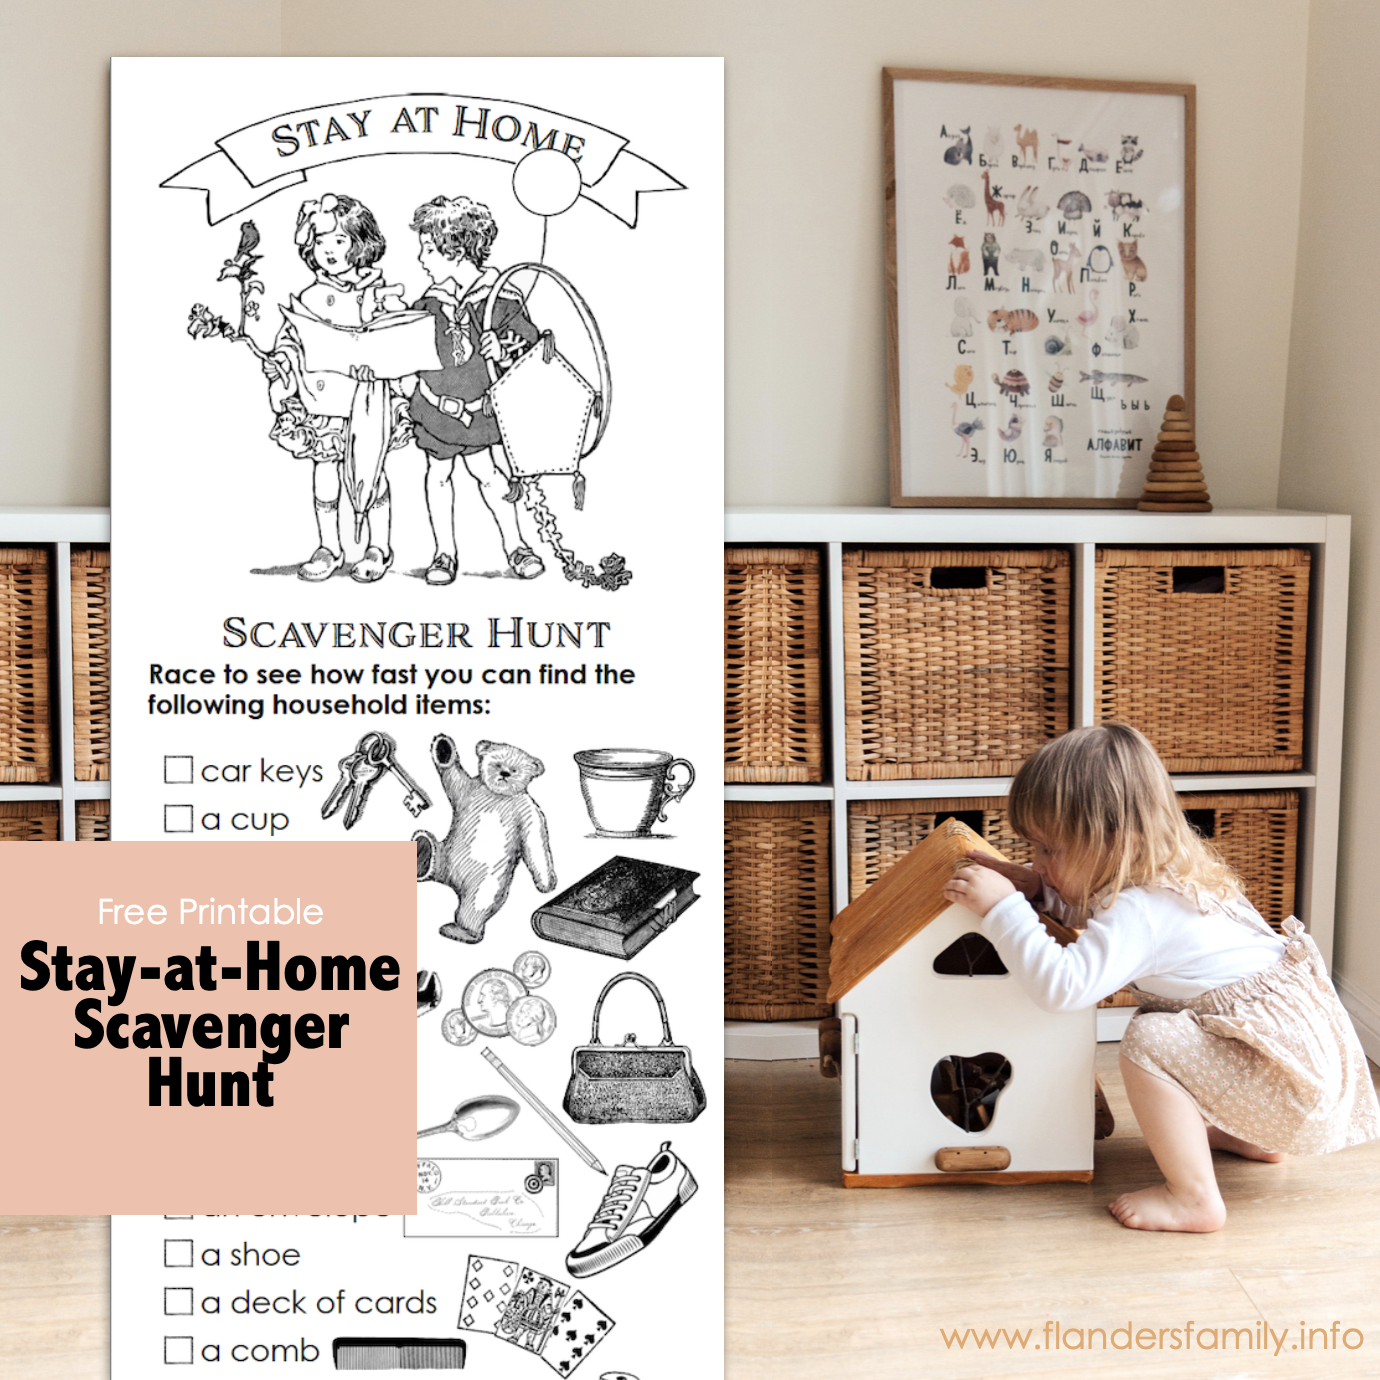 Stay-at-Home Scavenger Hunt